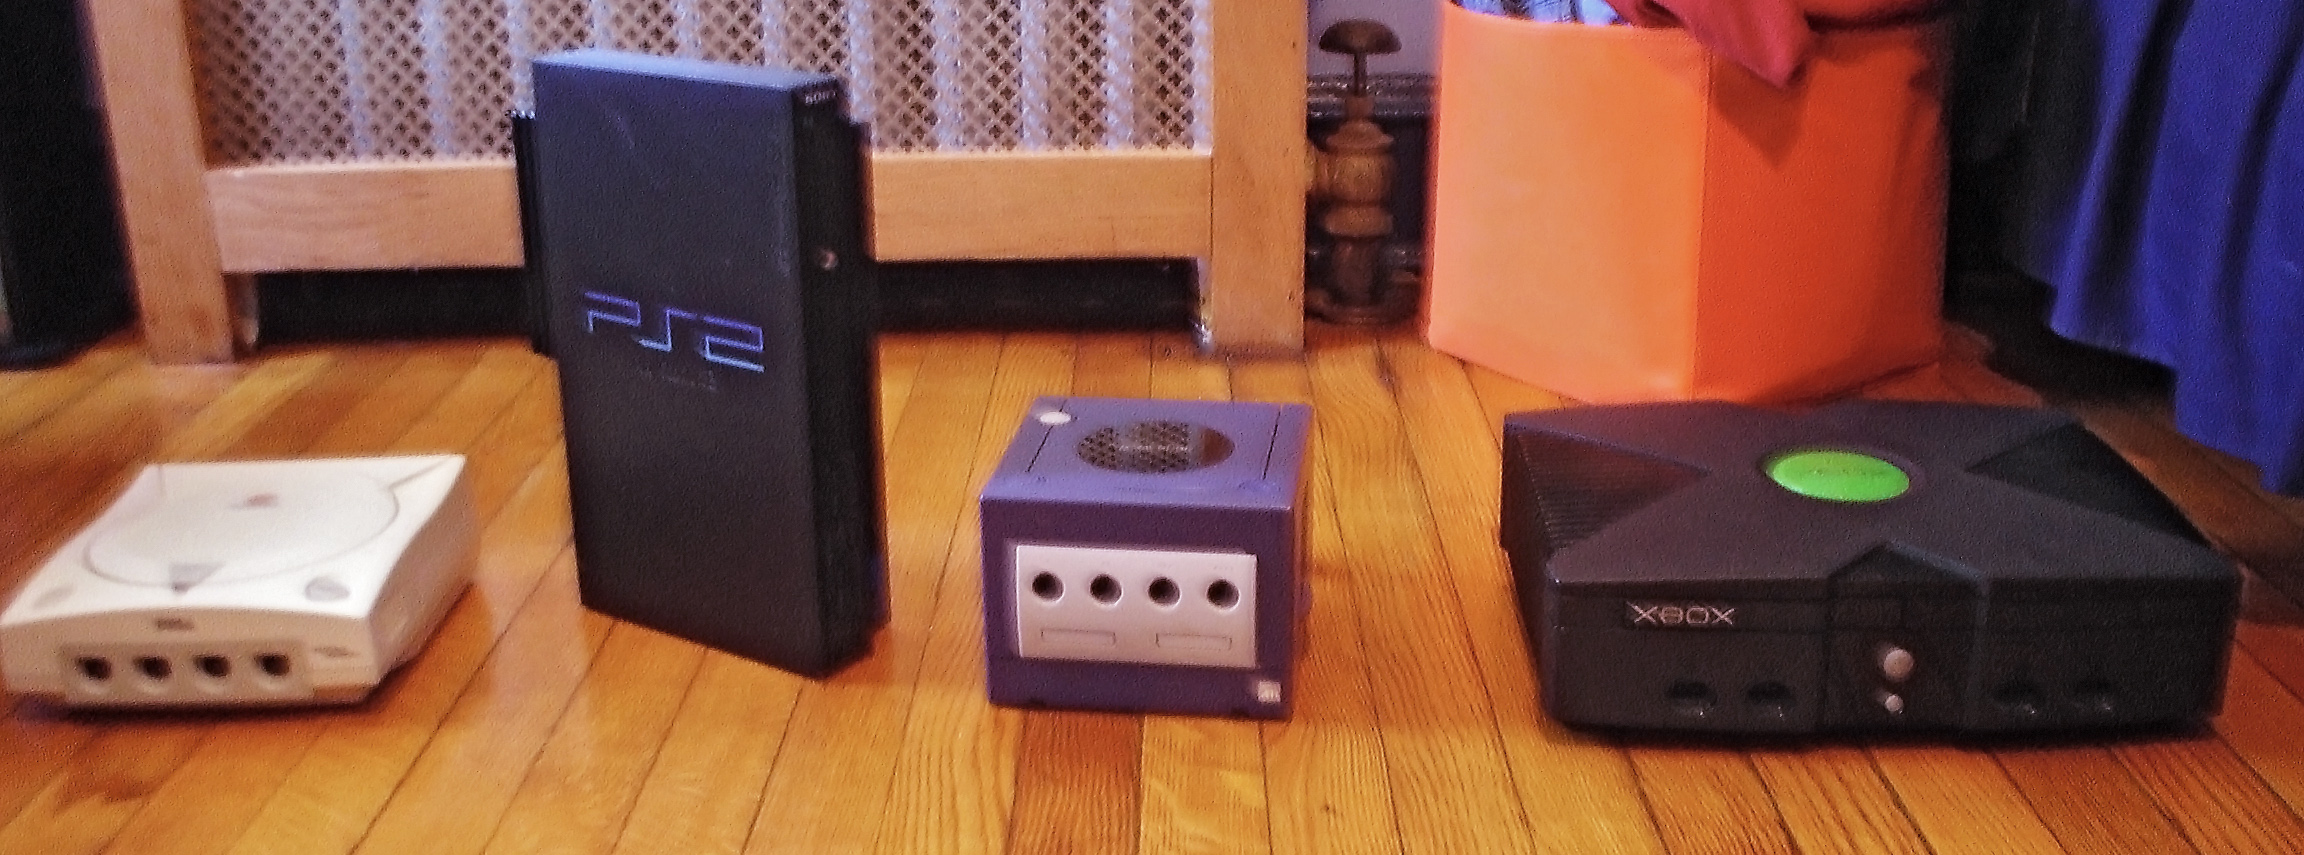 History of video game consoles (sixth generation) - Simple English  Wikipedia, the free encyclopedia